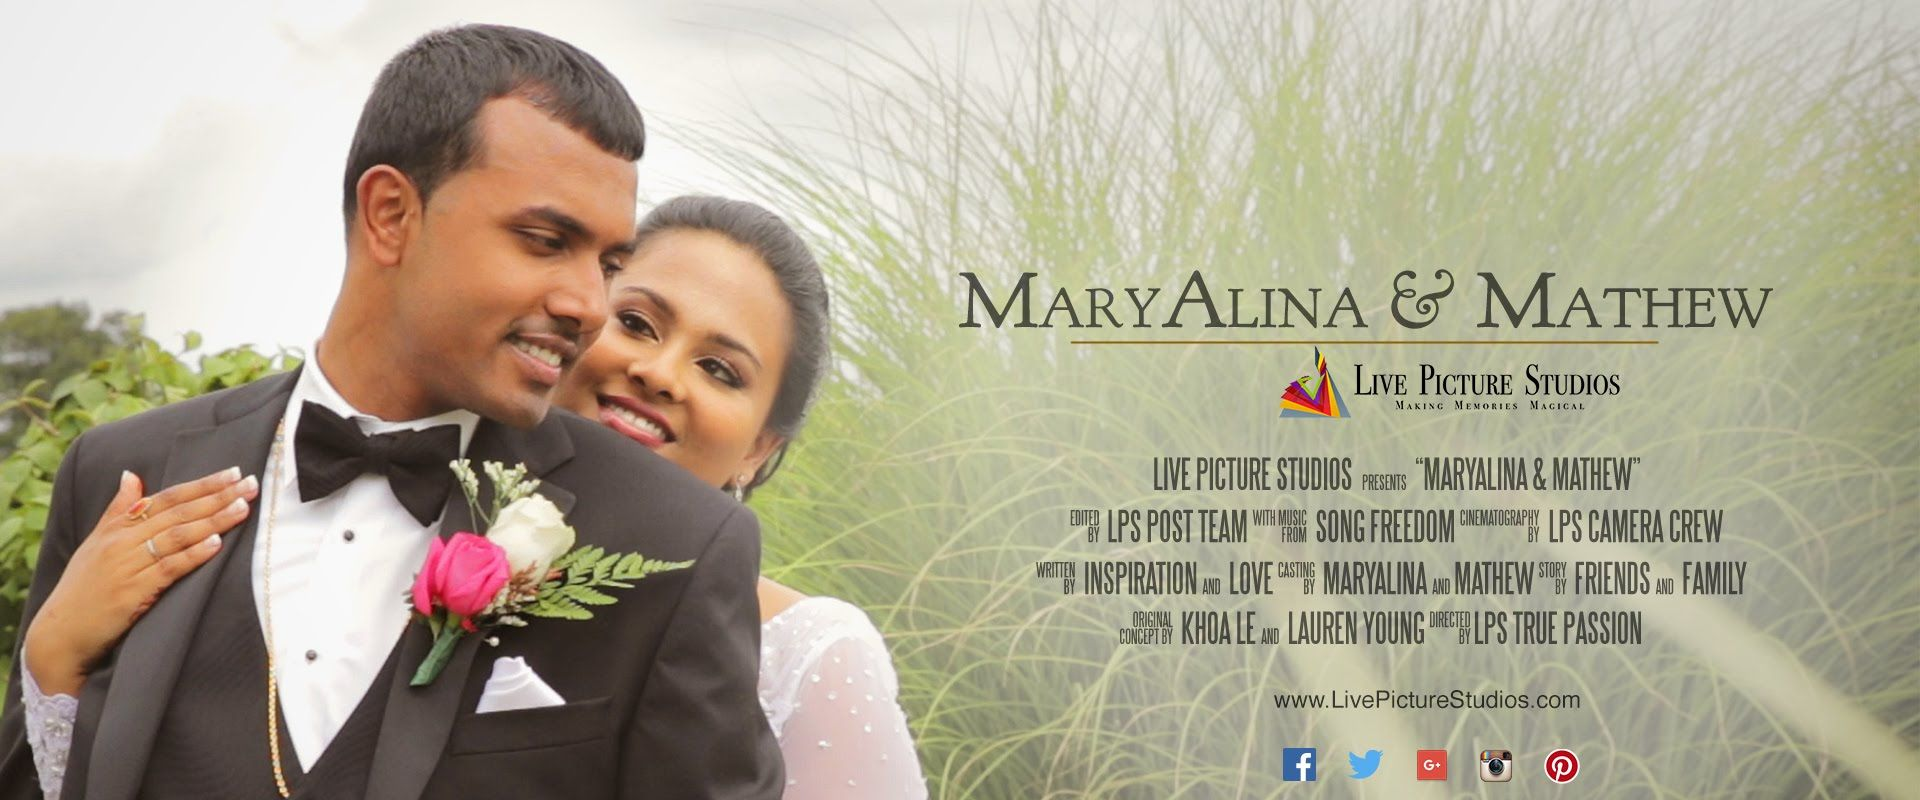 Maryalina And Mathew Wedding Highlight By Live Picture Studios Wedding Highlights Wedding Video Inspiration Live Picture